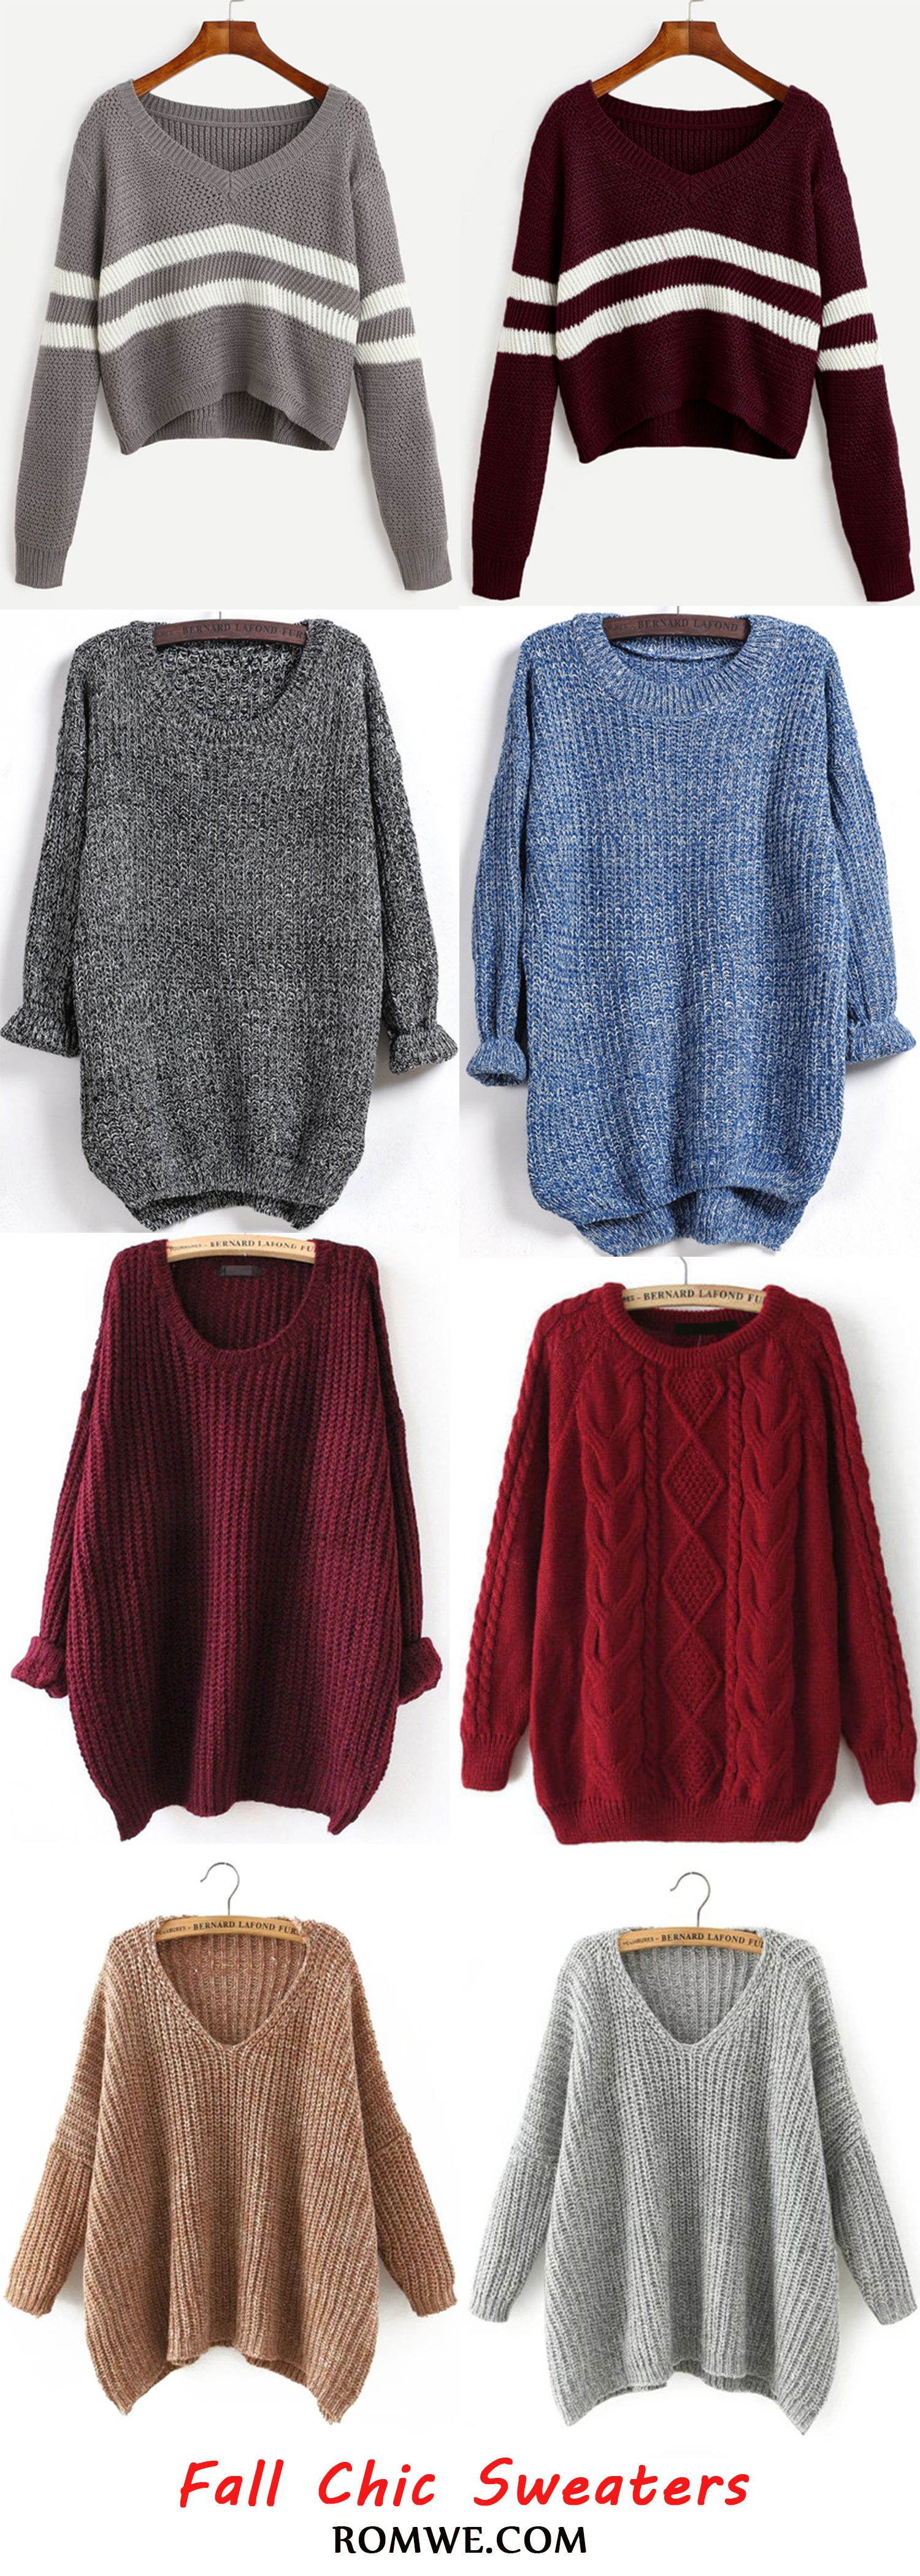 Fall is coming and you need a sweater to make you warm. Romwe can ...